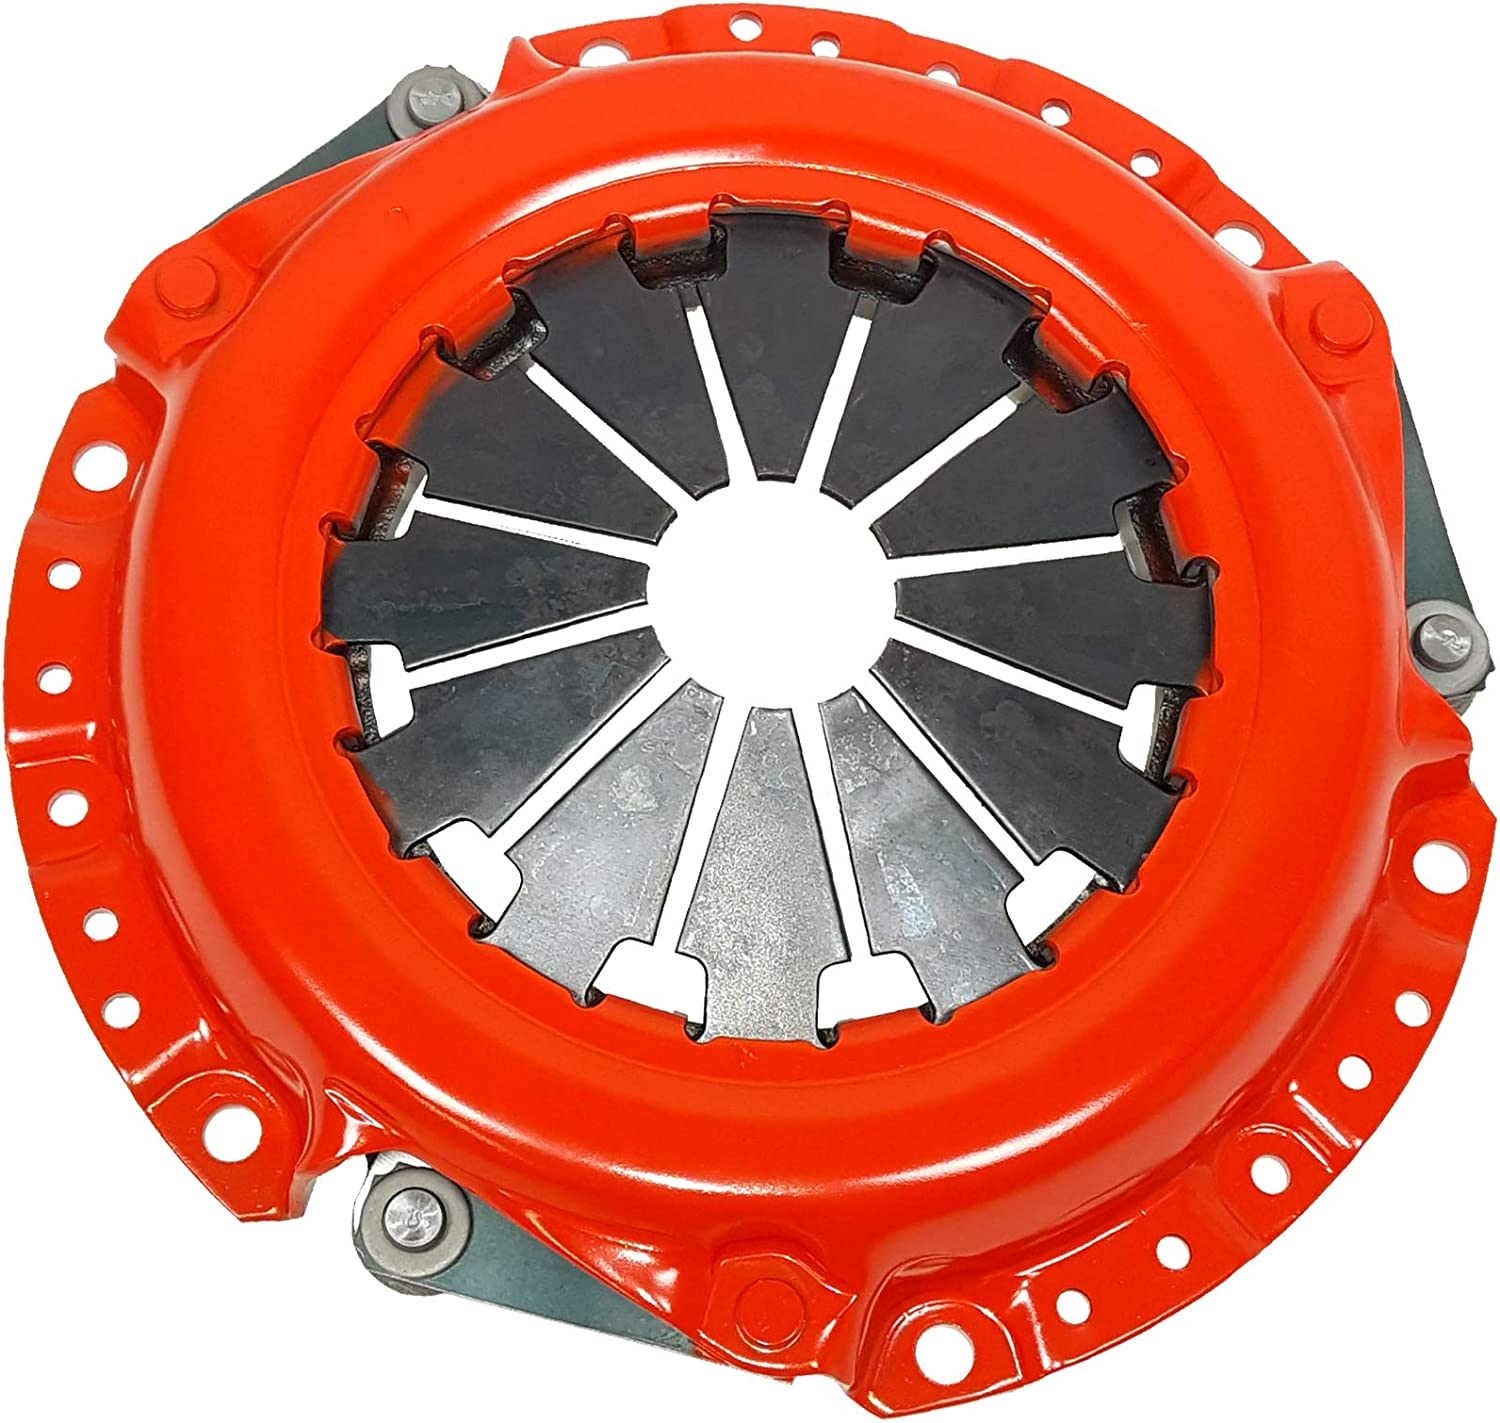 Sr20De; Stage 2 Clutch Kit replacement for 200Sx Sentra Nx G20 Base S Gxe T Ca Se-r 1991-2006 2.0L l4 GAS DOHC Naturally Aspirated